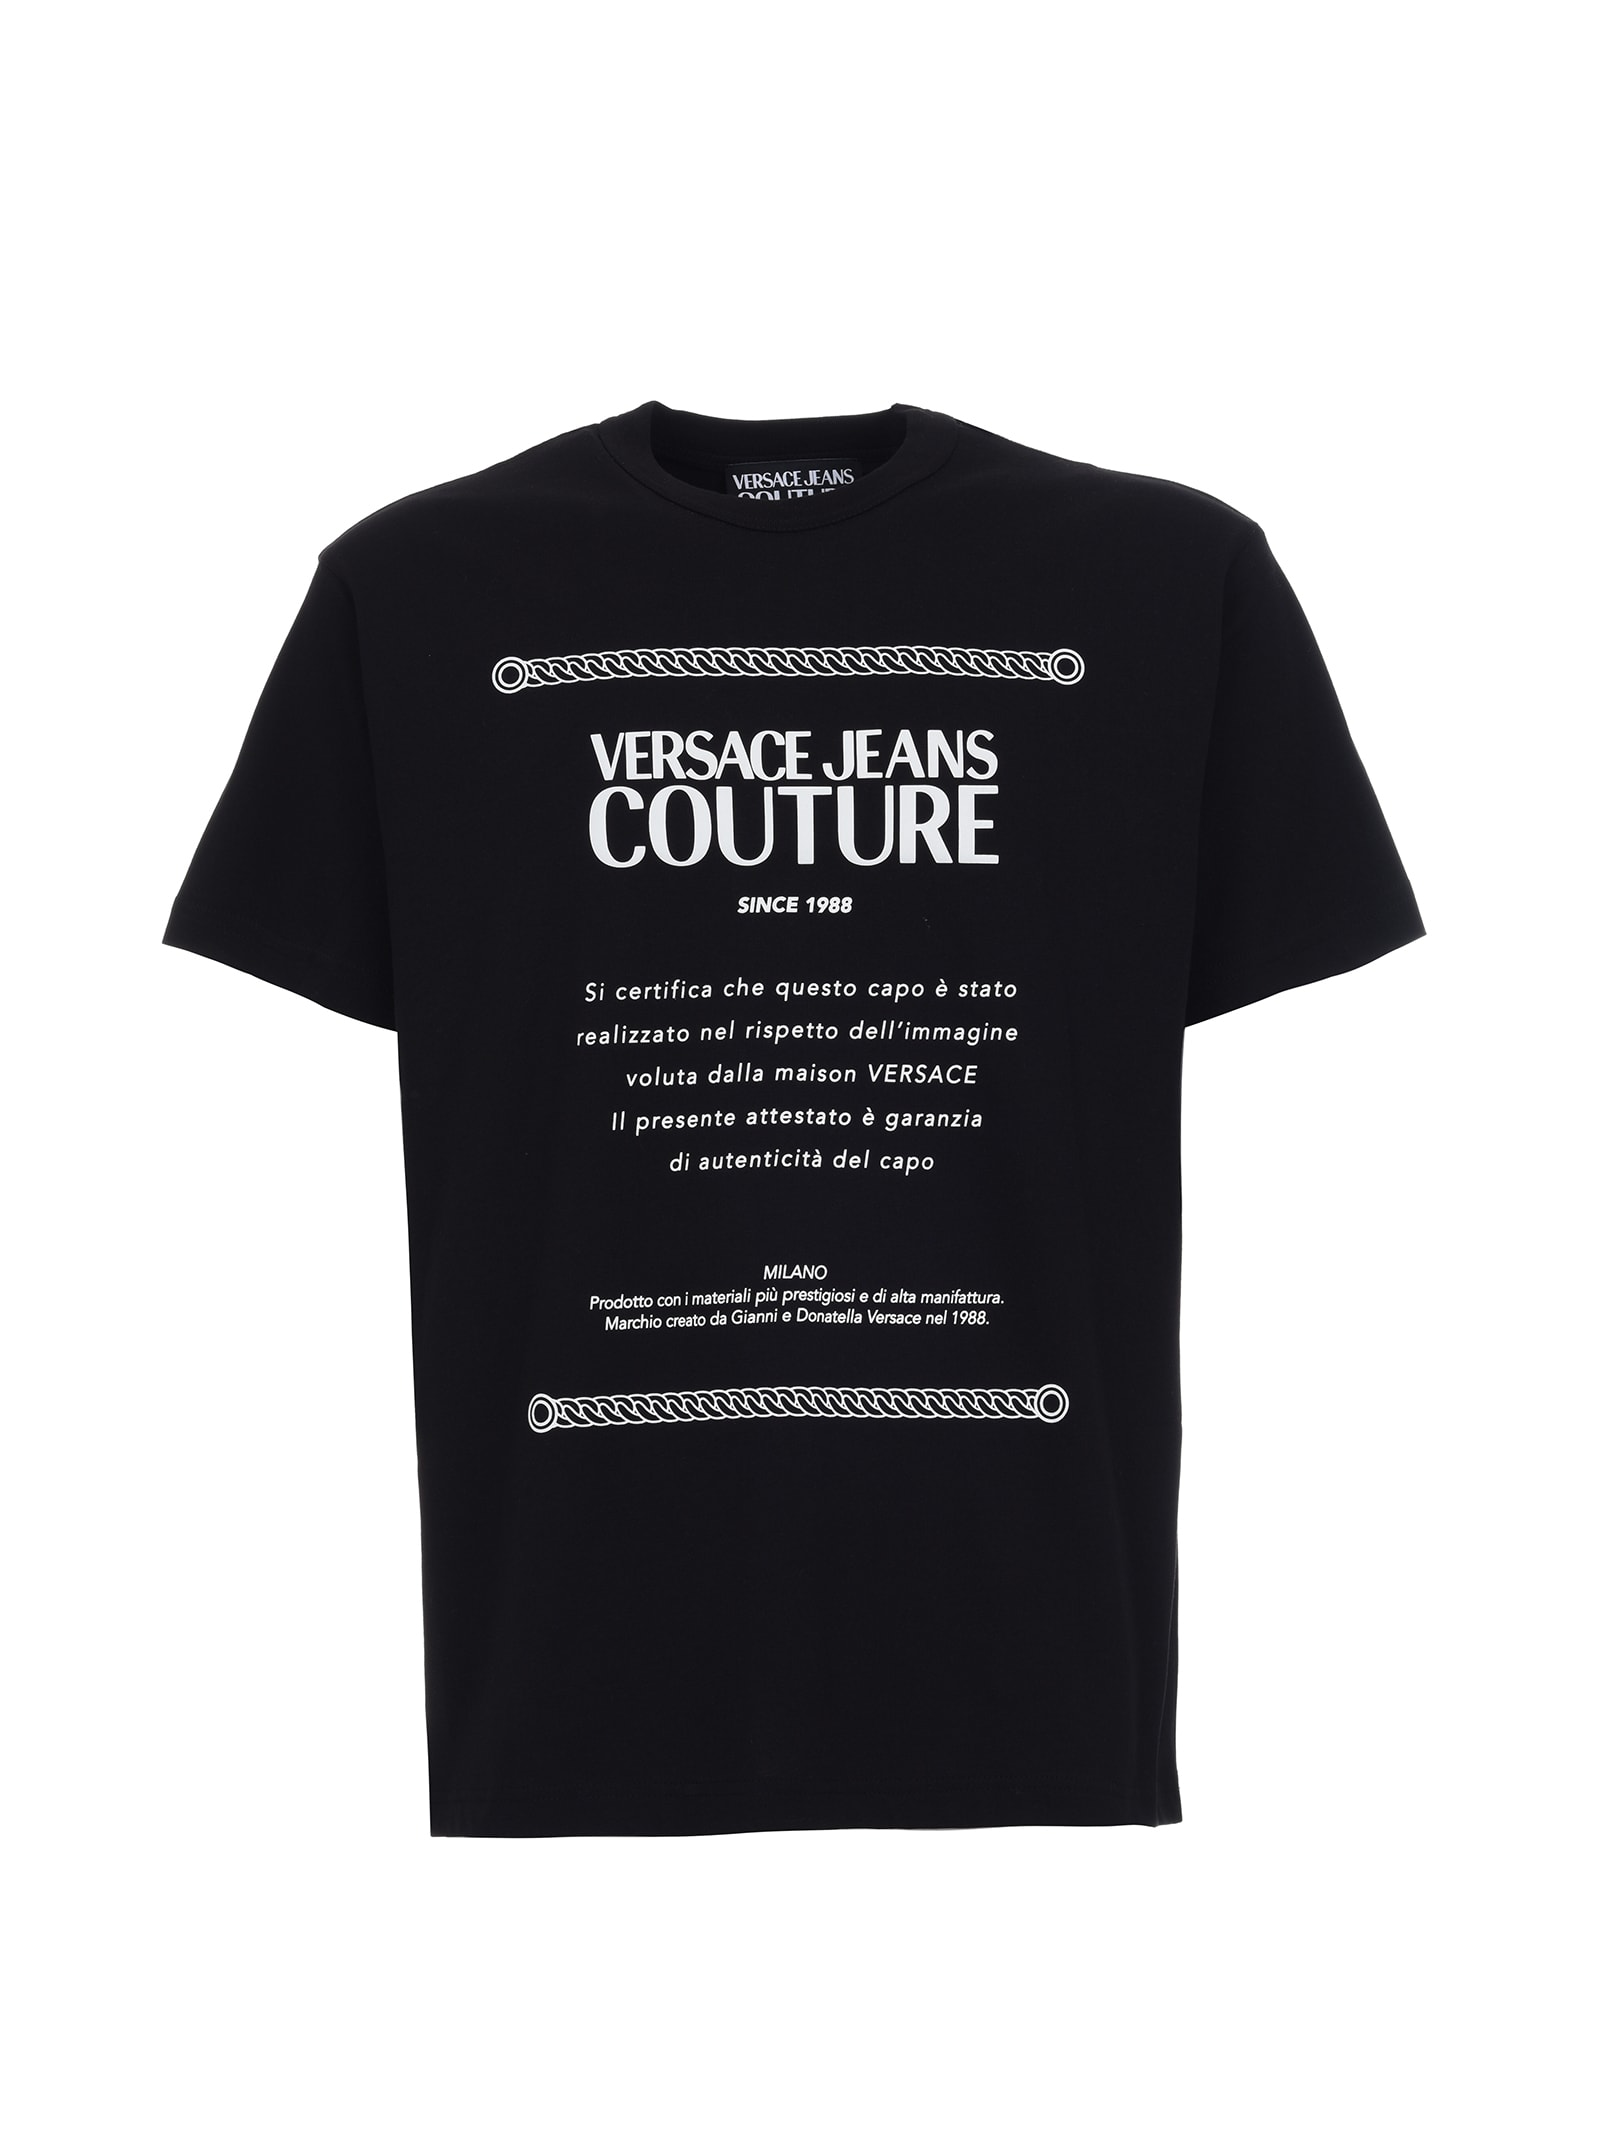 Versace Jeans Couture Classic Black T-shirt With White Logo In Nero